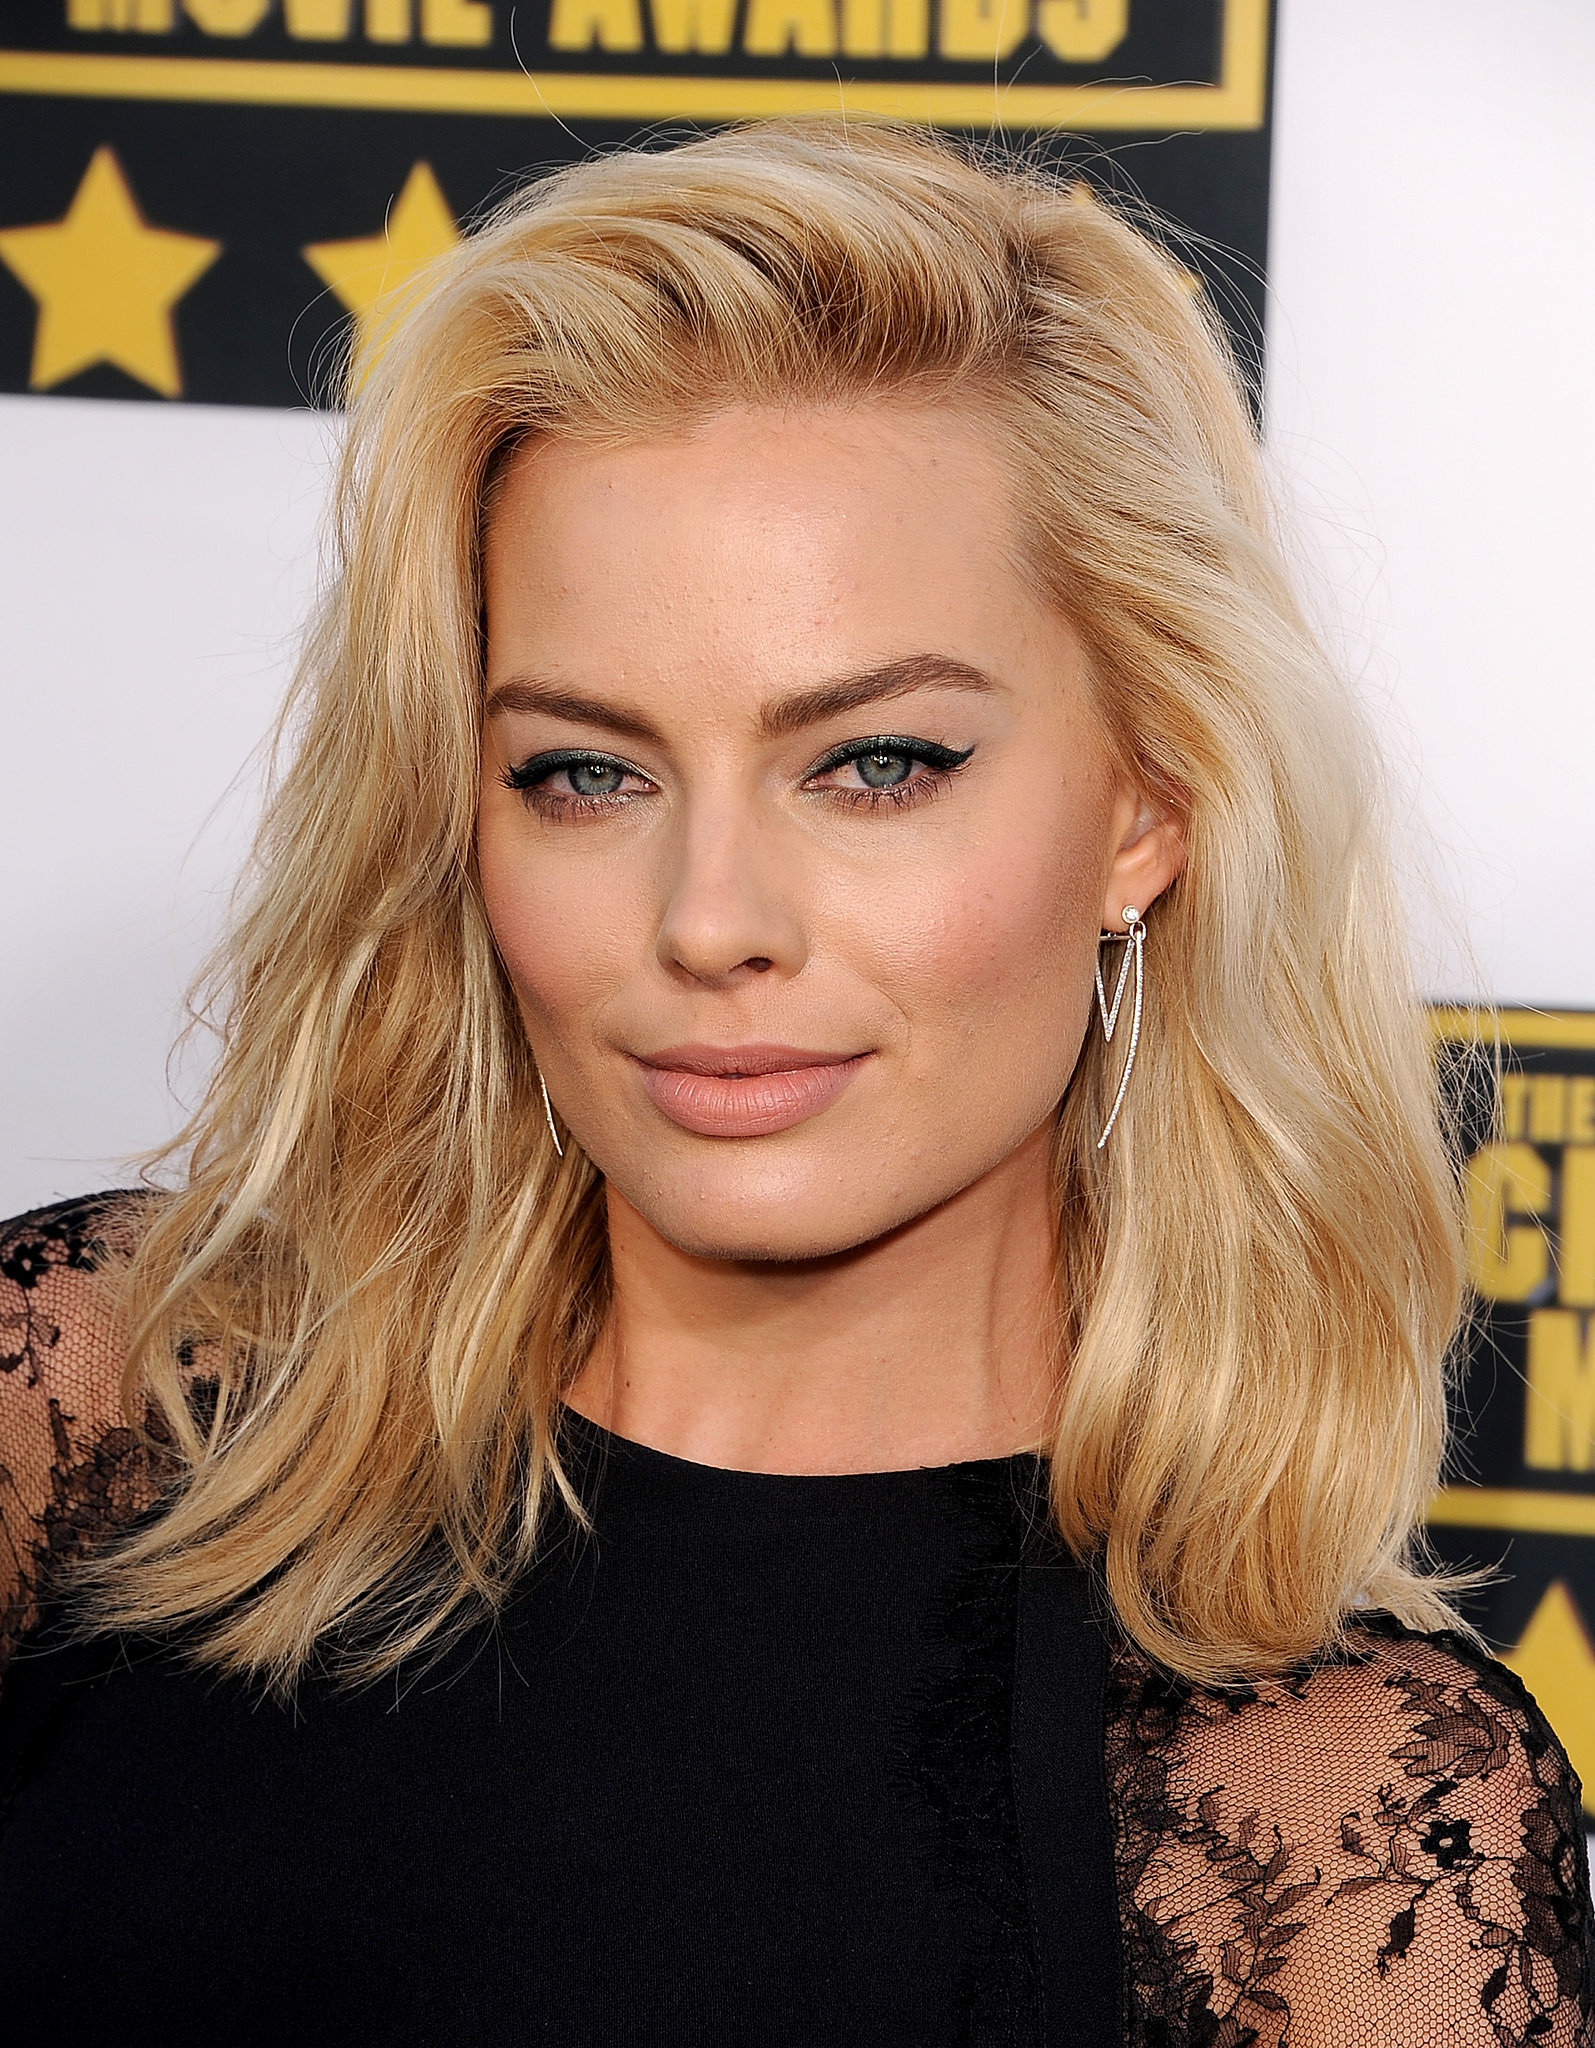 Margot Robbie at the Critics' Choice Awards